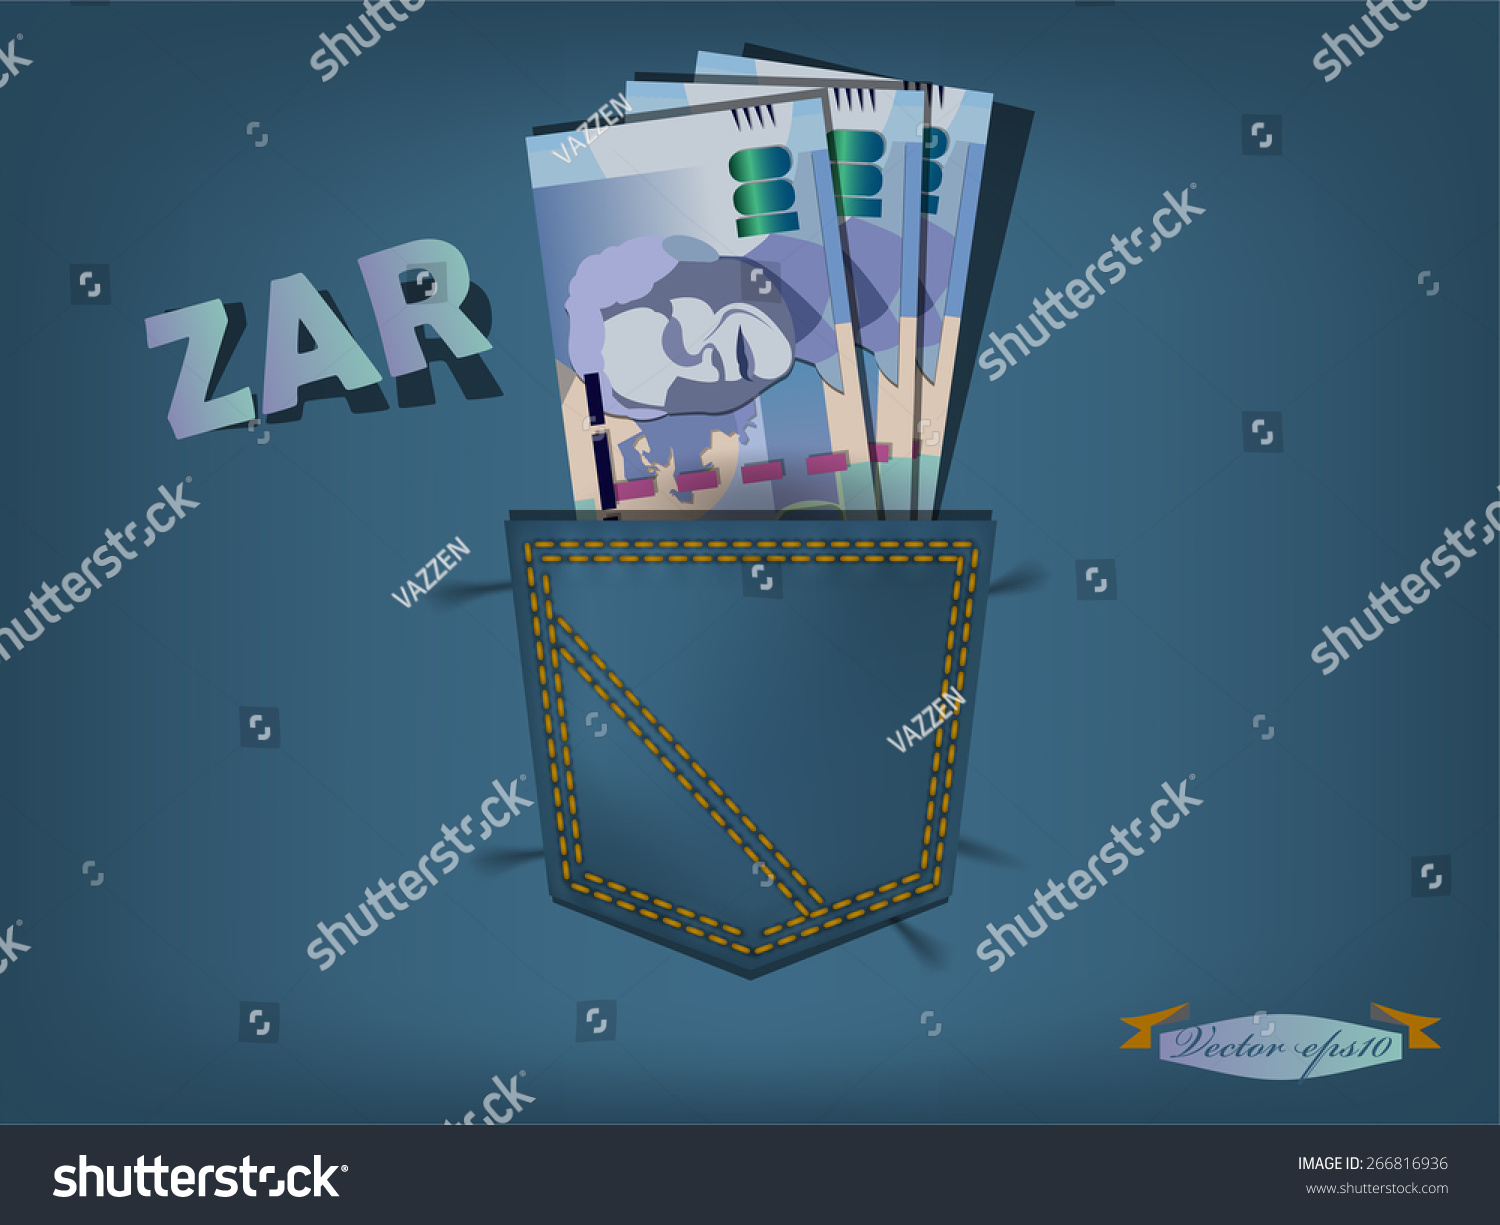 Illustration south african rand pocket blue stock vector 266816936 illustration of south african rand in the pocket of blue jeans buycottarizona